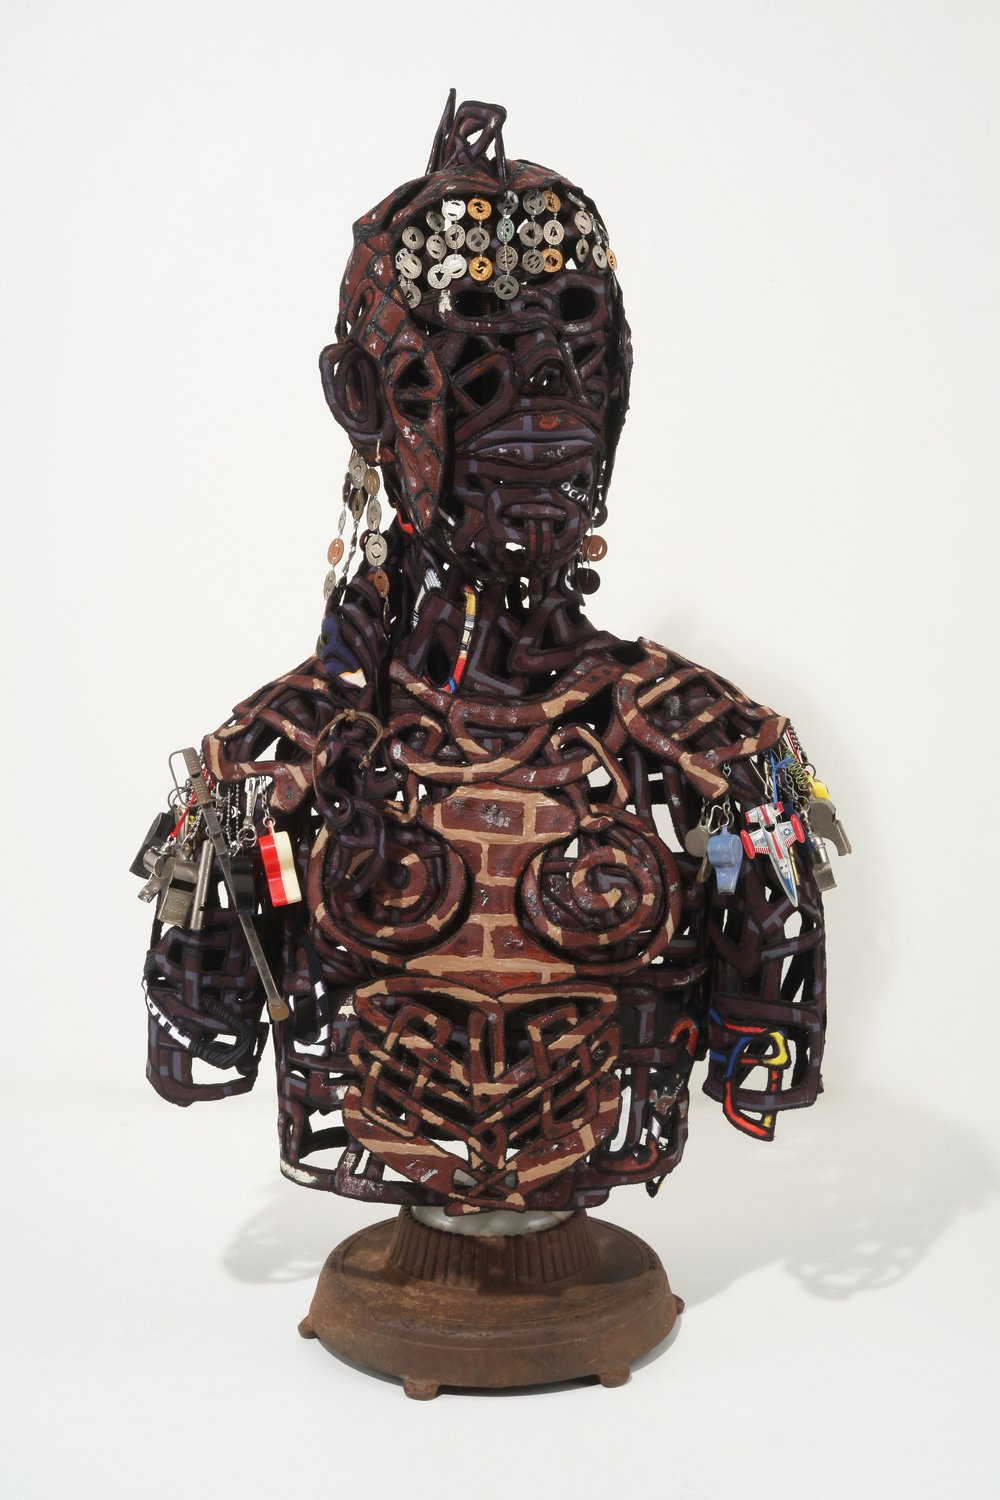 THIRD PLACE  - Tina Maier | Sentinel | Textiles sculpture with found objects